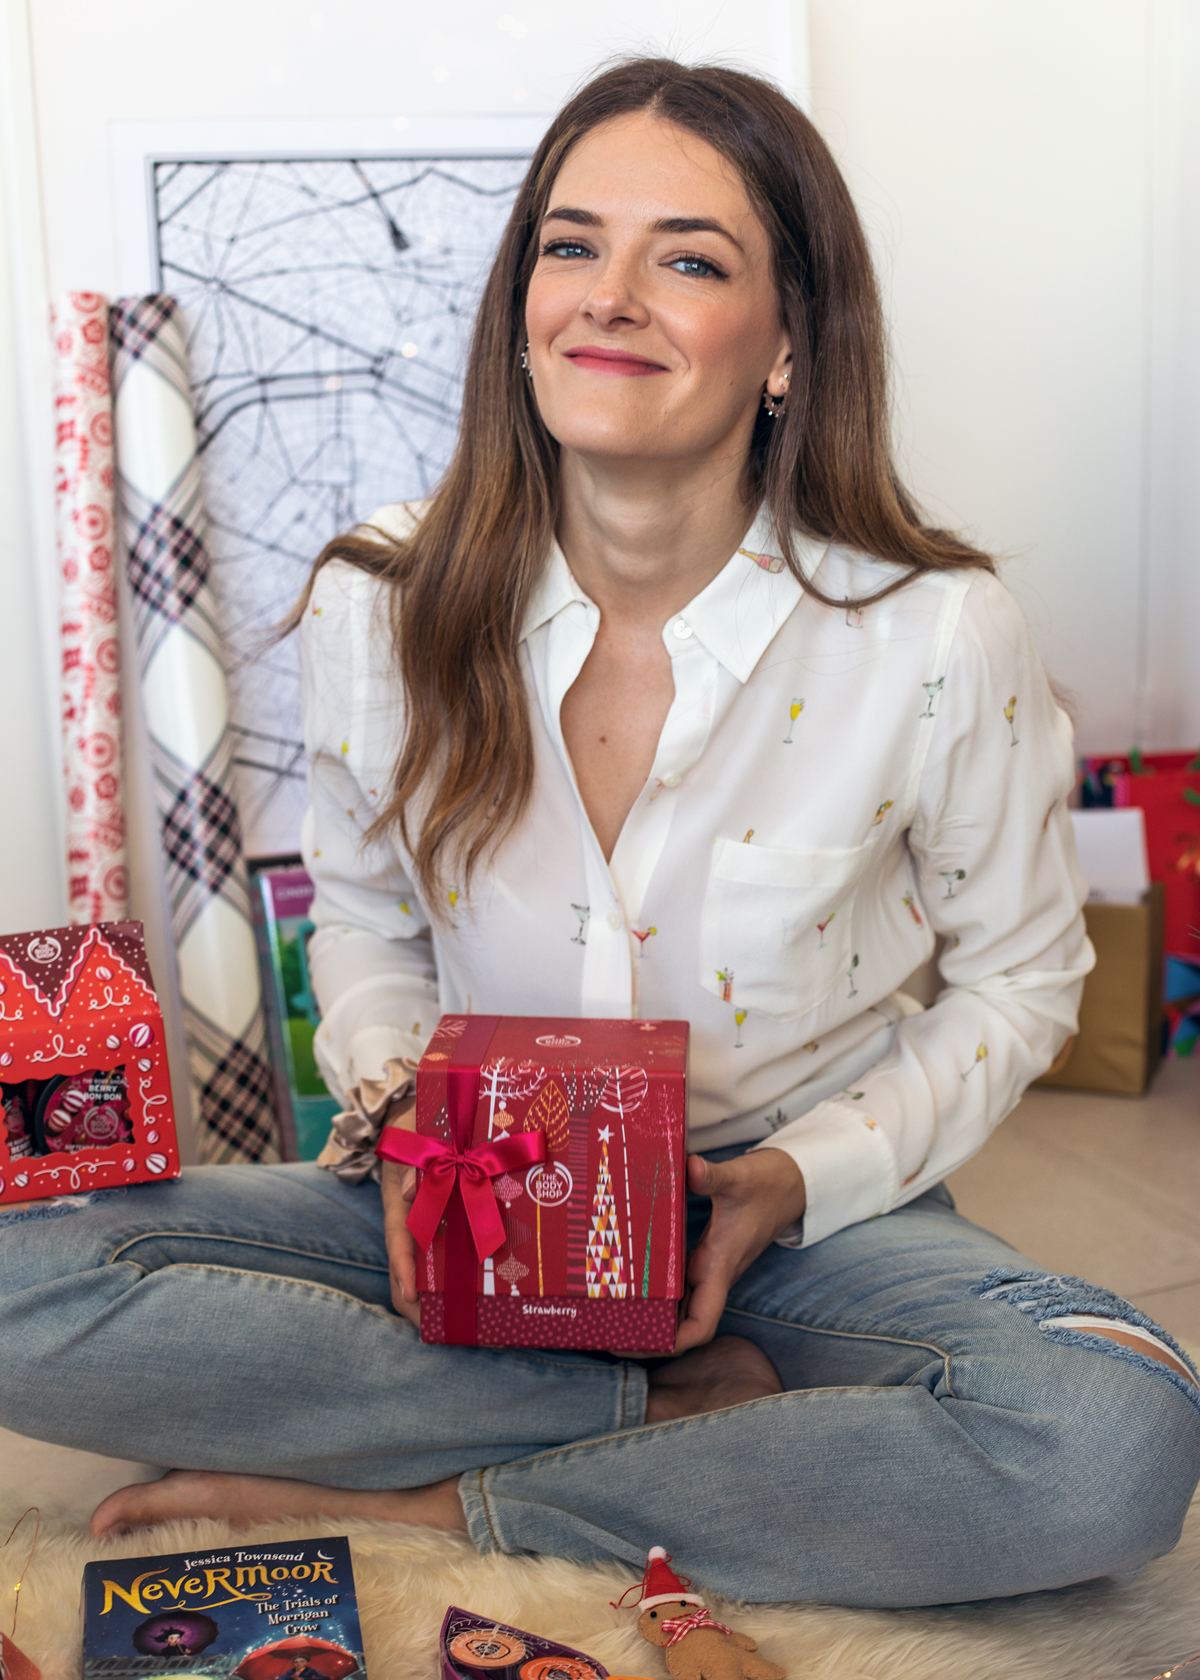 2018 Christmas gift guide Inspiring Wit blog featuring tween gifts The Body Shop Strawberry body gift boxes